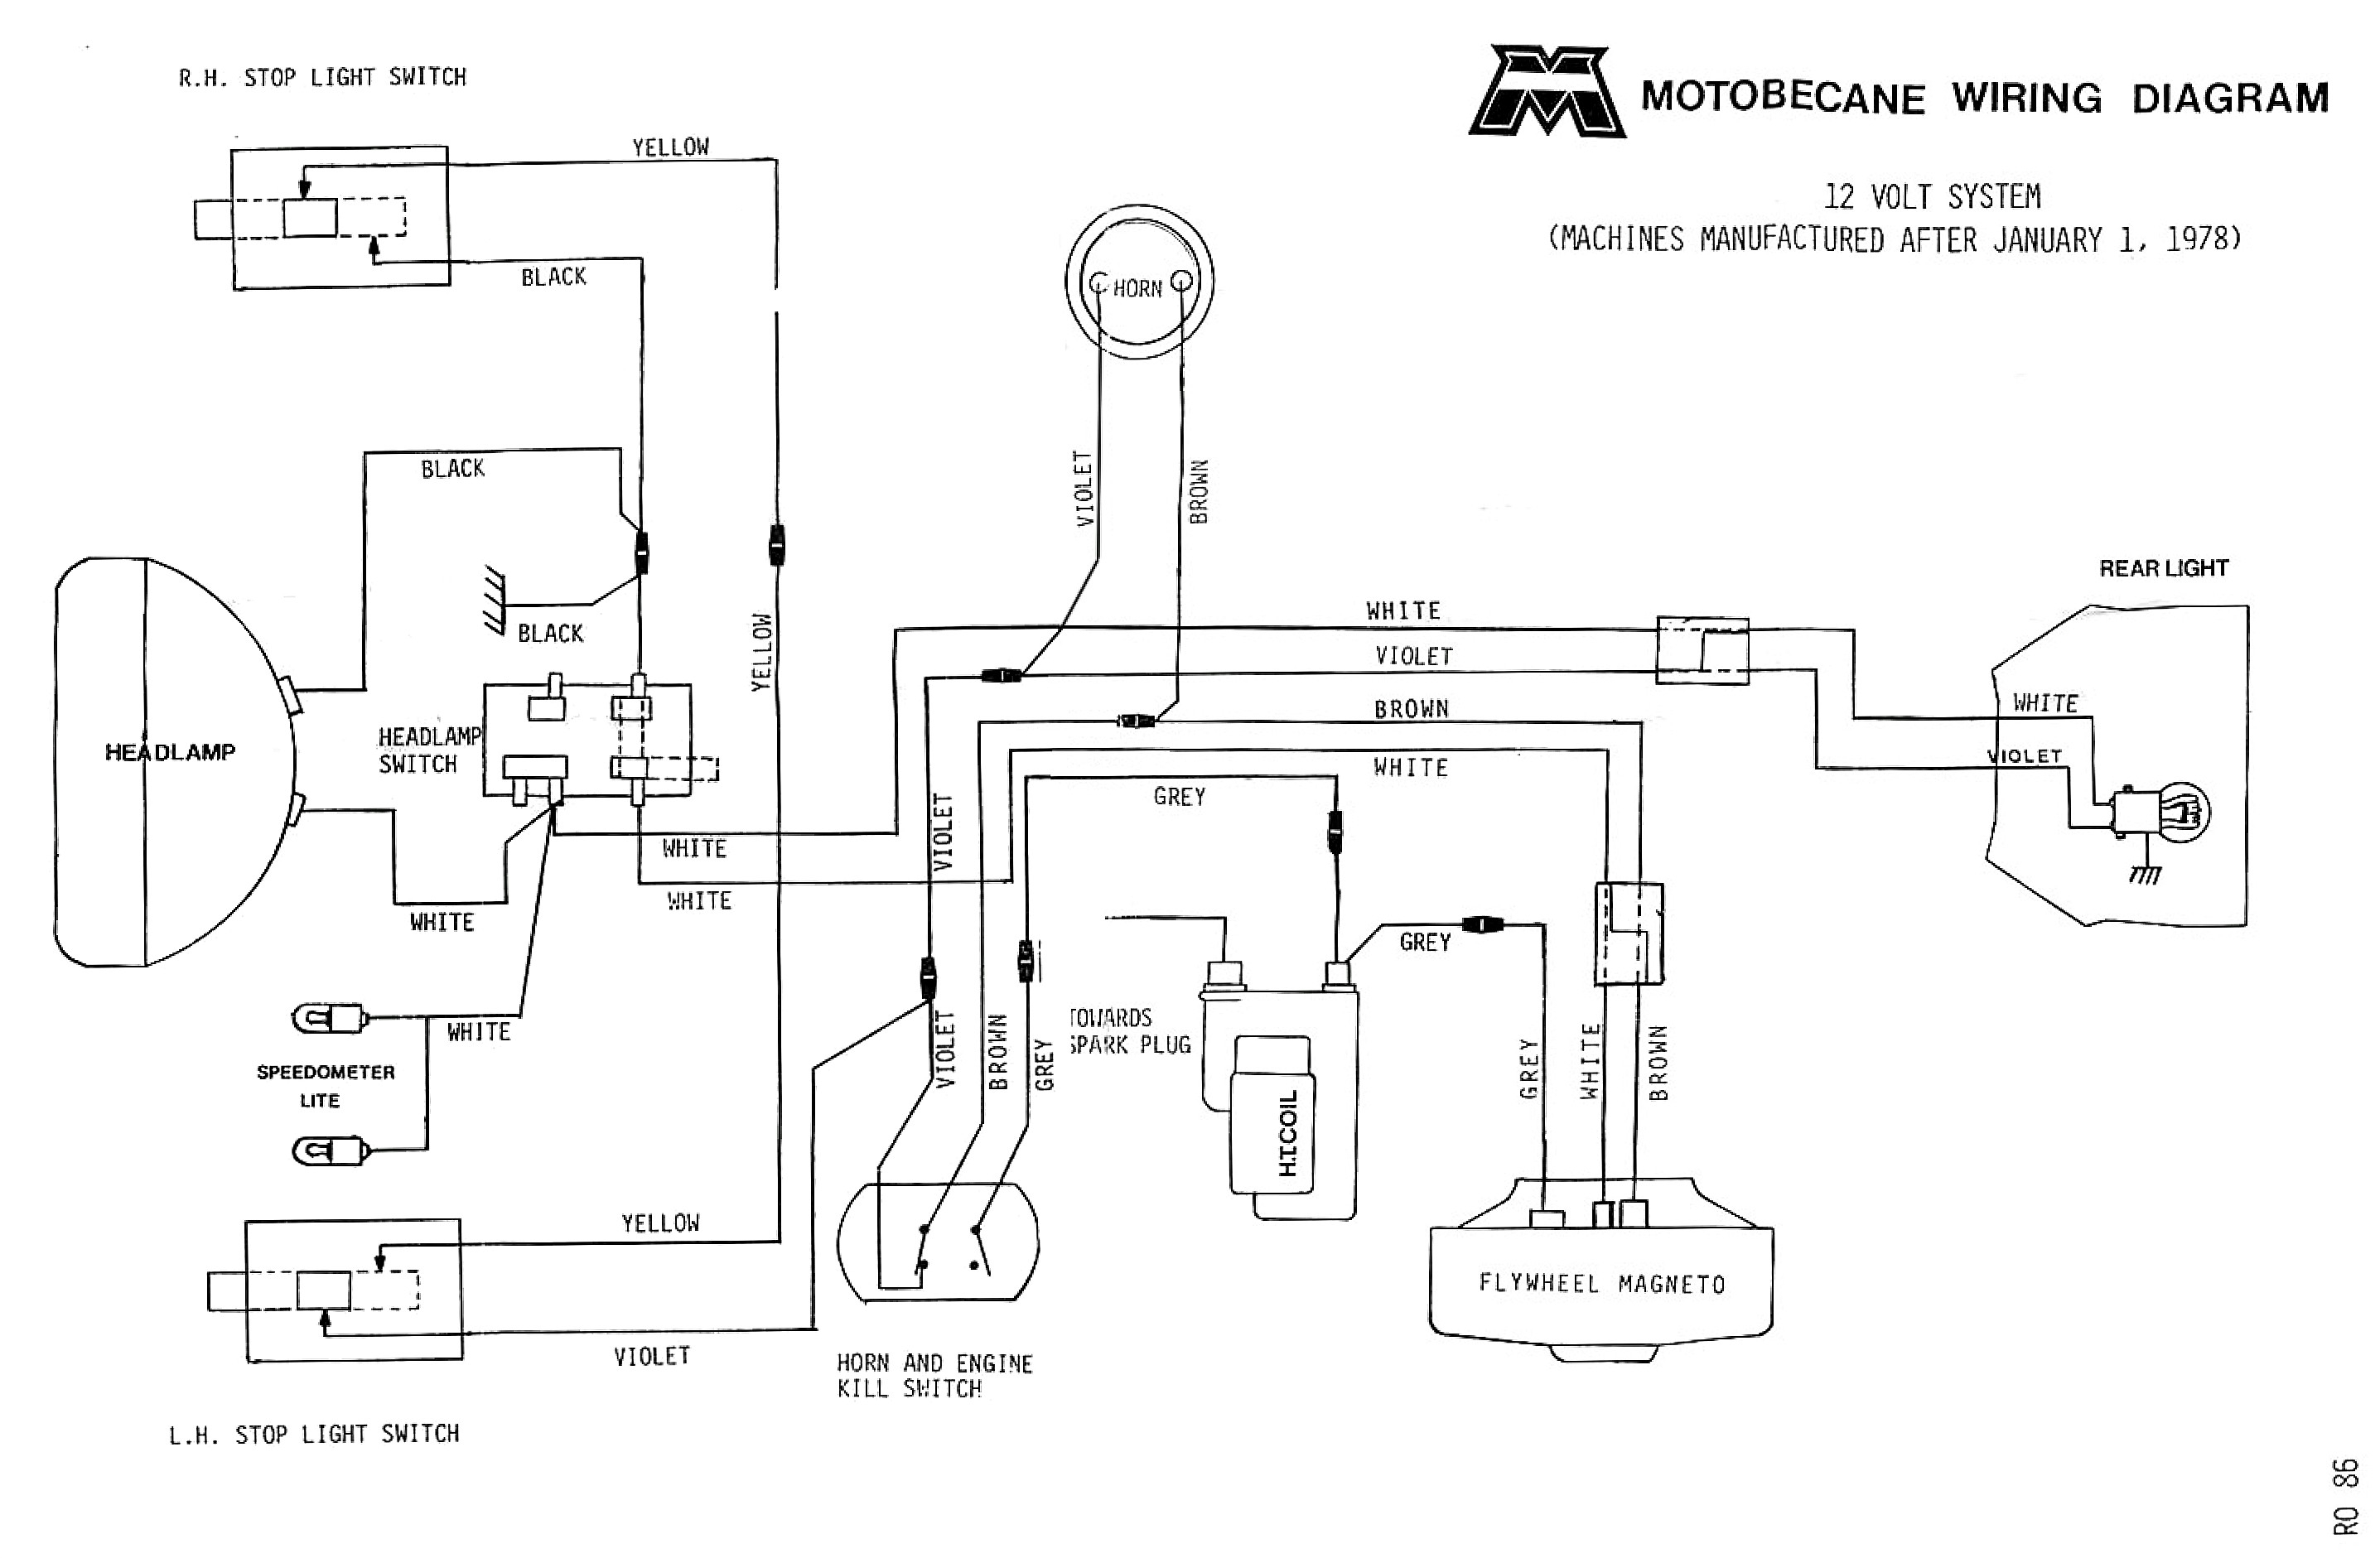 Farmall H Magneto Diagram - Wiring Diagrams on